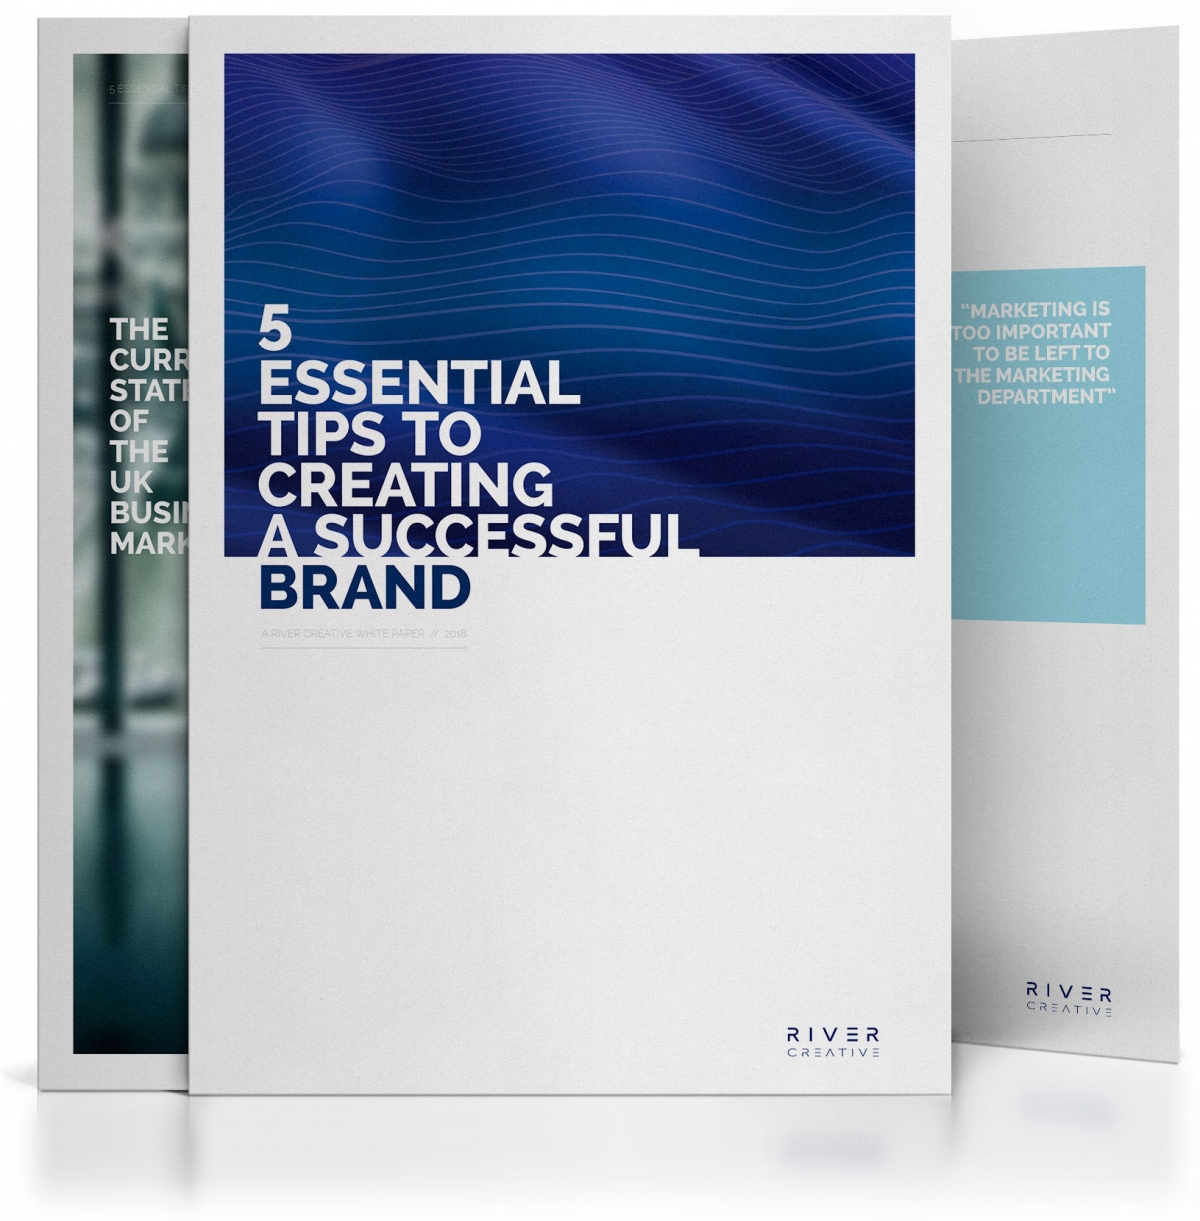 5 Essentials Tips to Create a Successful Brand